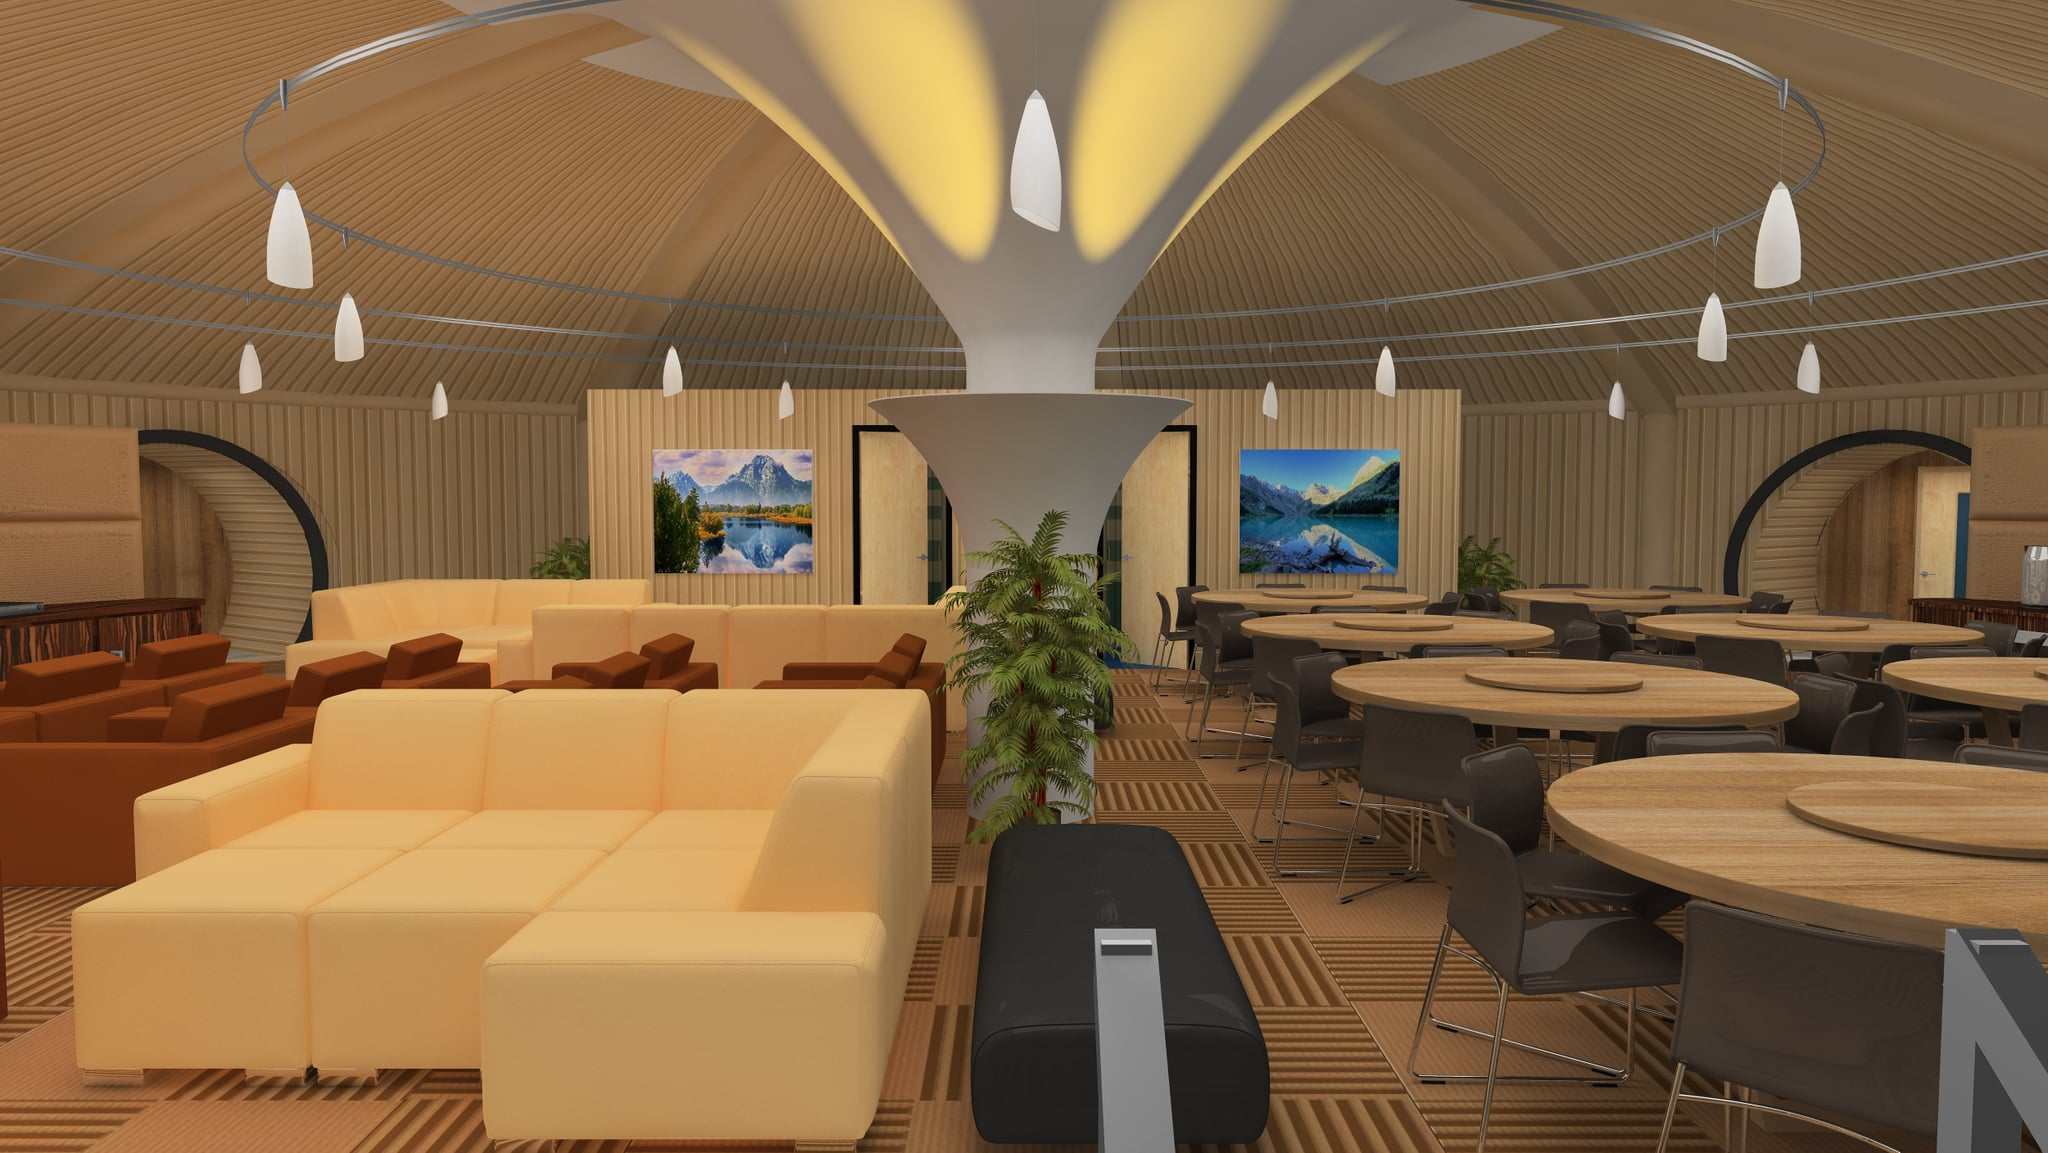 10 million dollar luxury doomsday bunker popsugar tech